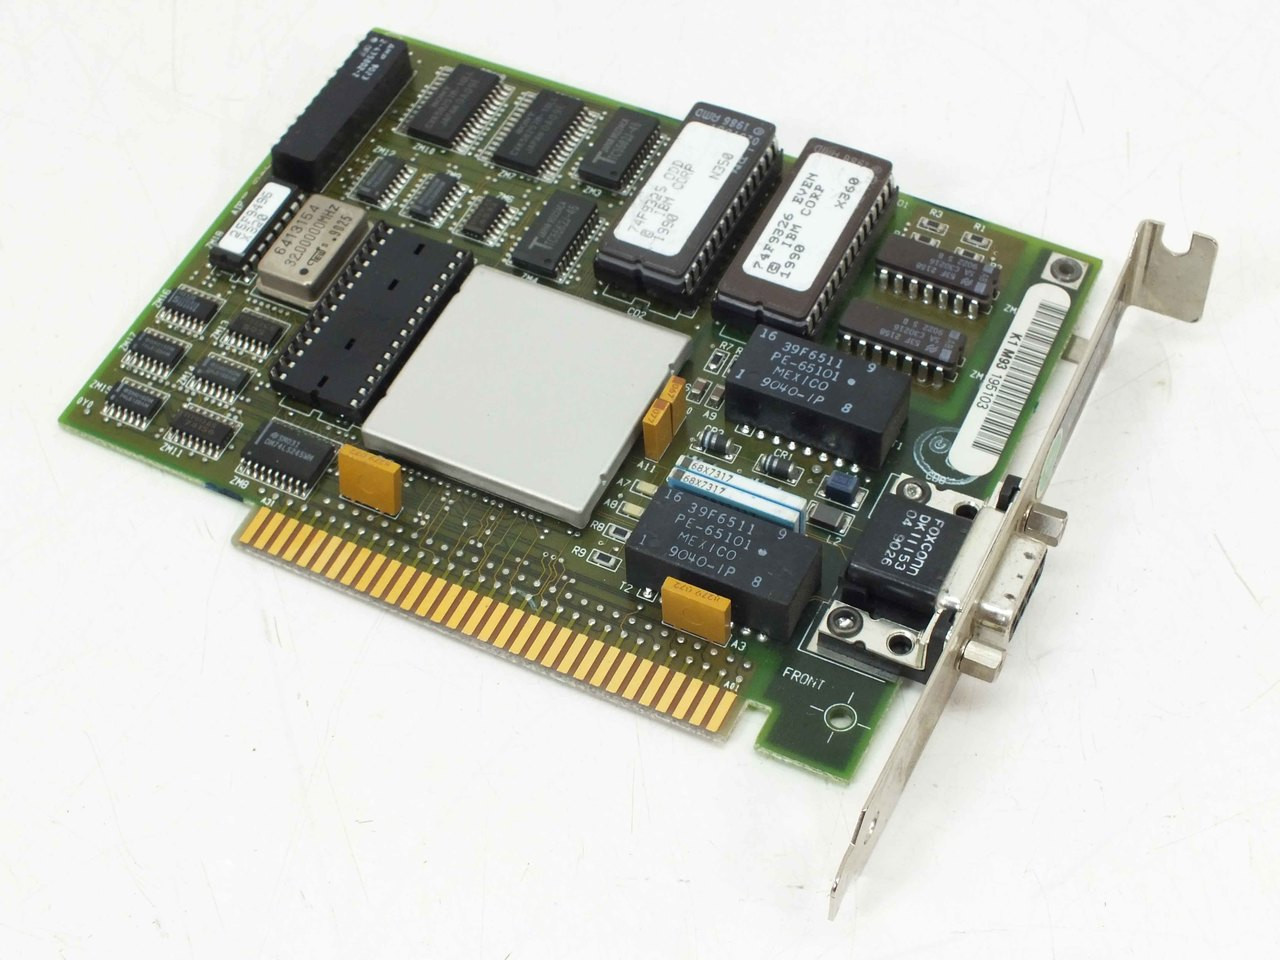 16/4 TOKEN RING ISA CARD IBM Computers & Accessories Electronics ...